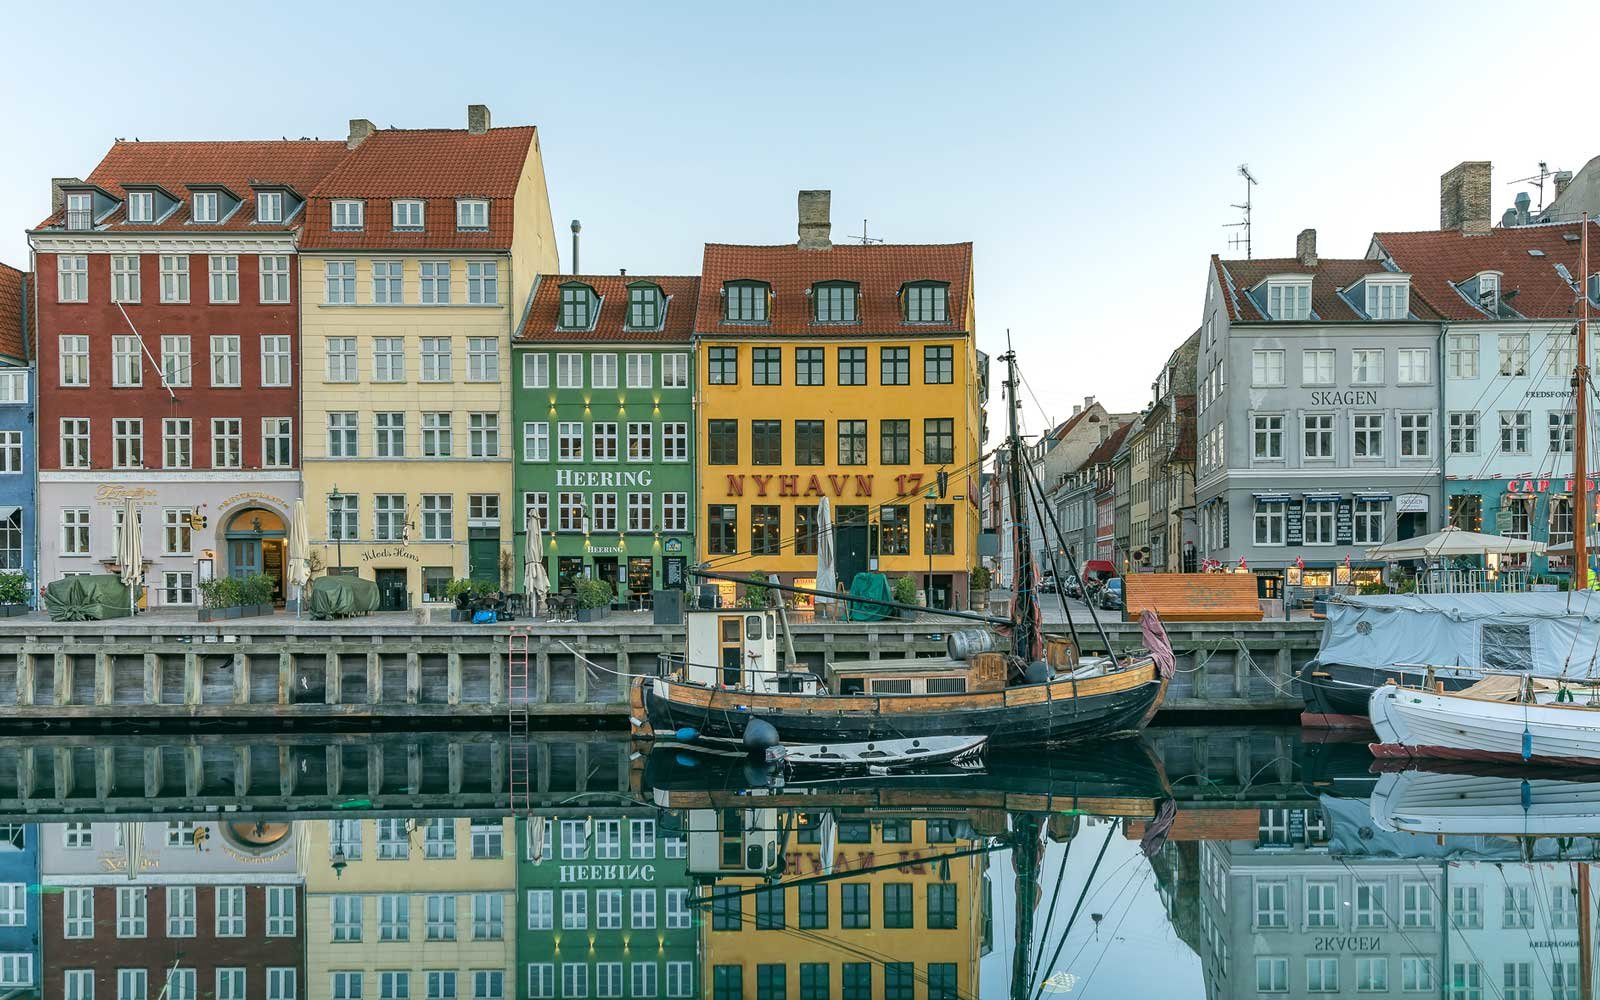 Book a Flight to Norway, Sweden or Denmark Starting at $355 Round-trip